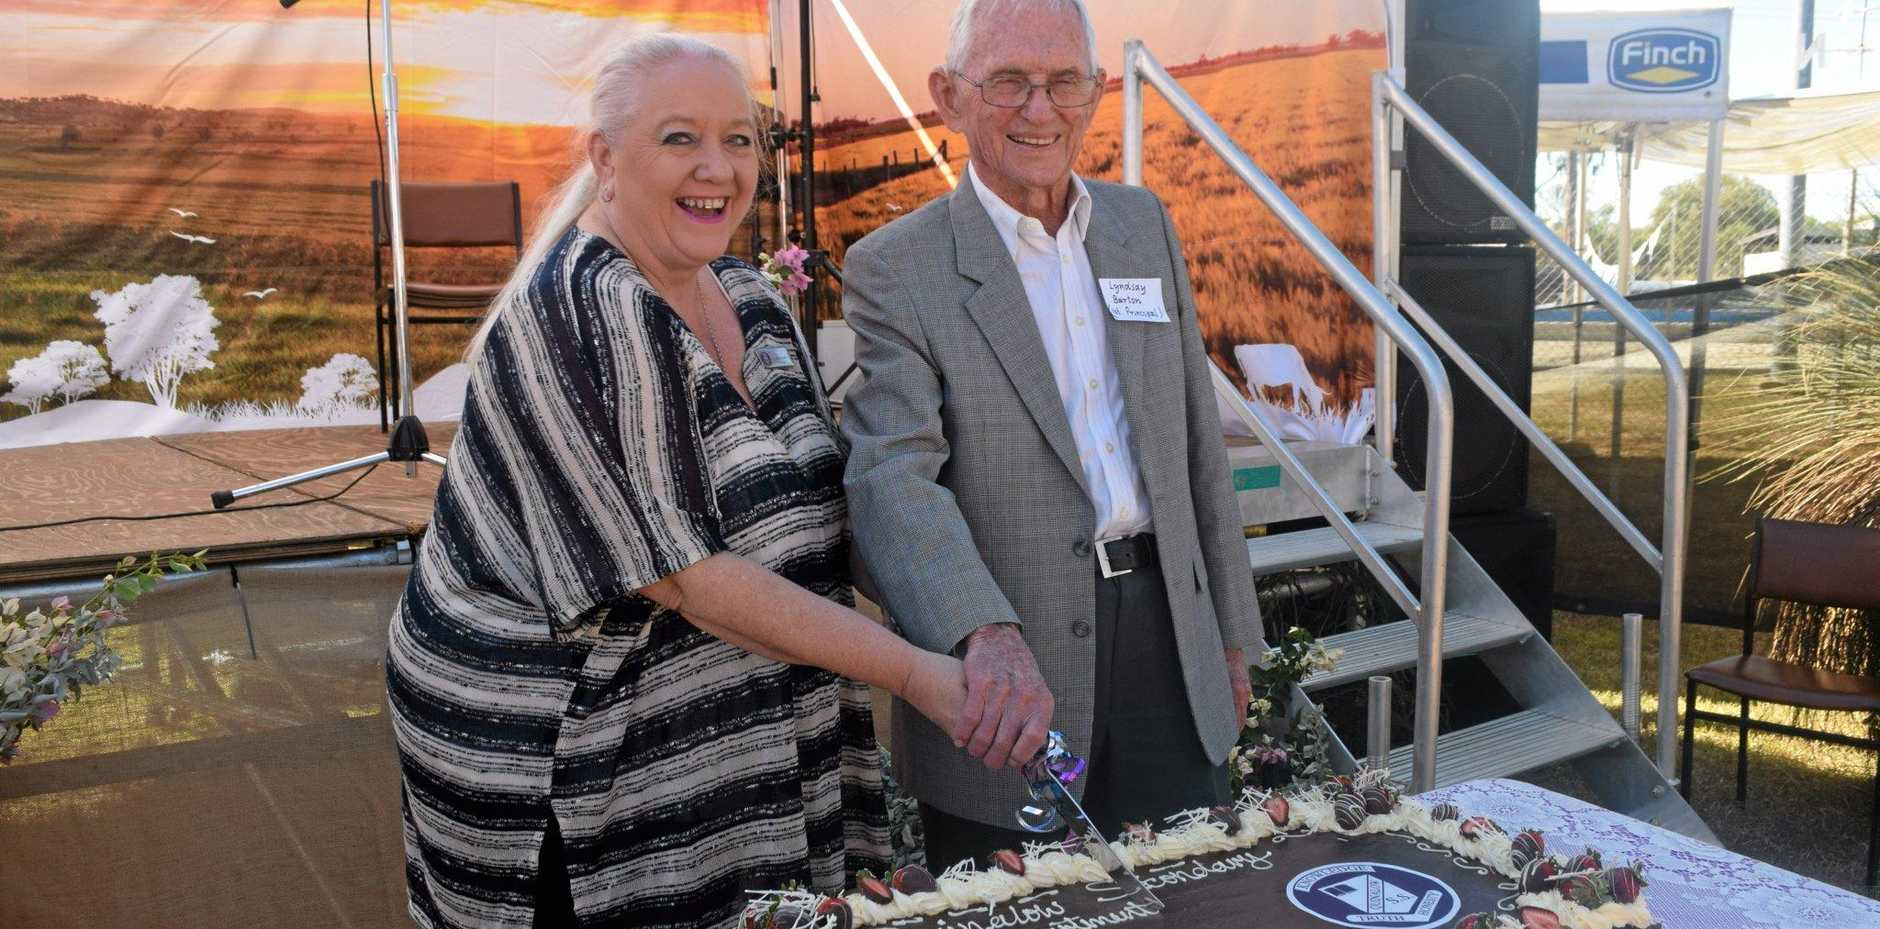 50 YEARS: Current principal Susan Booth and first principal Lyndsay Barton cut the cake at Quinalow's school celebrations.